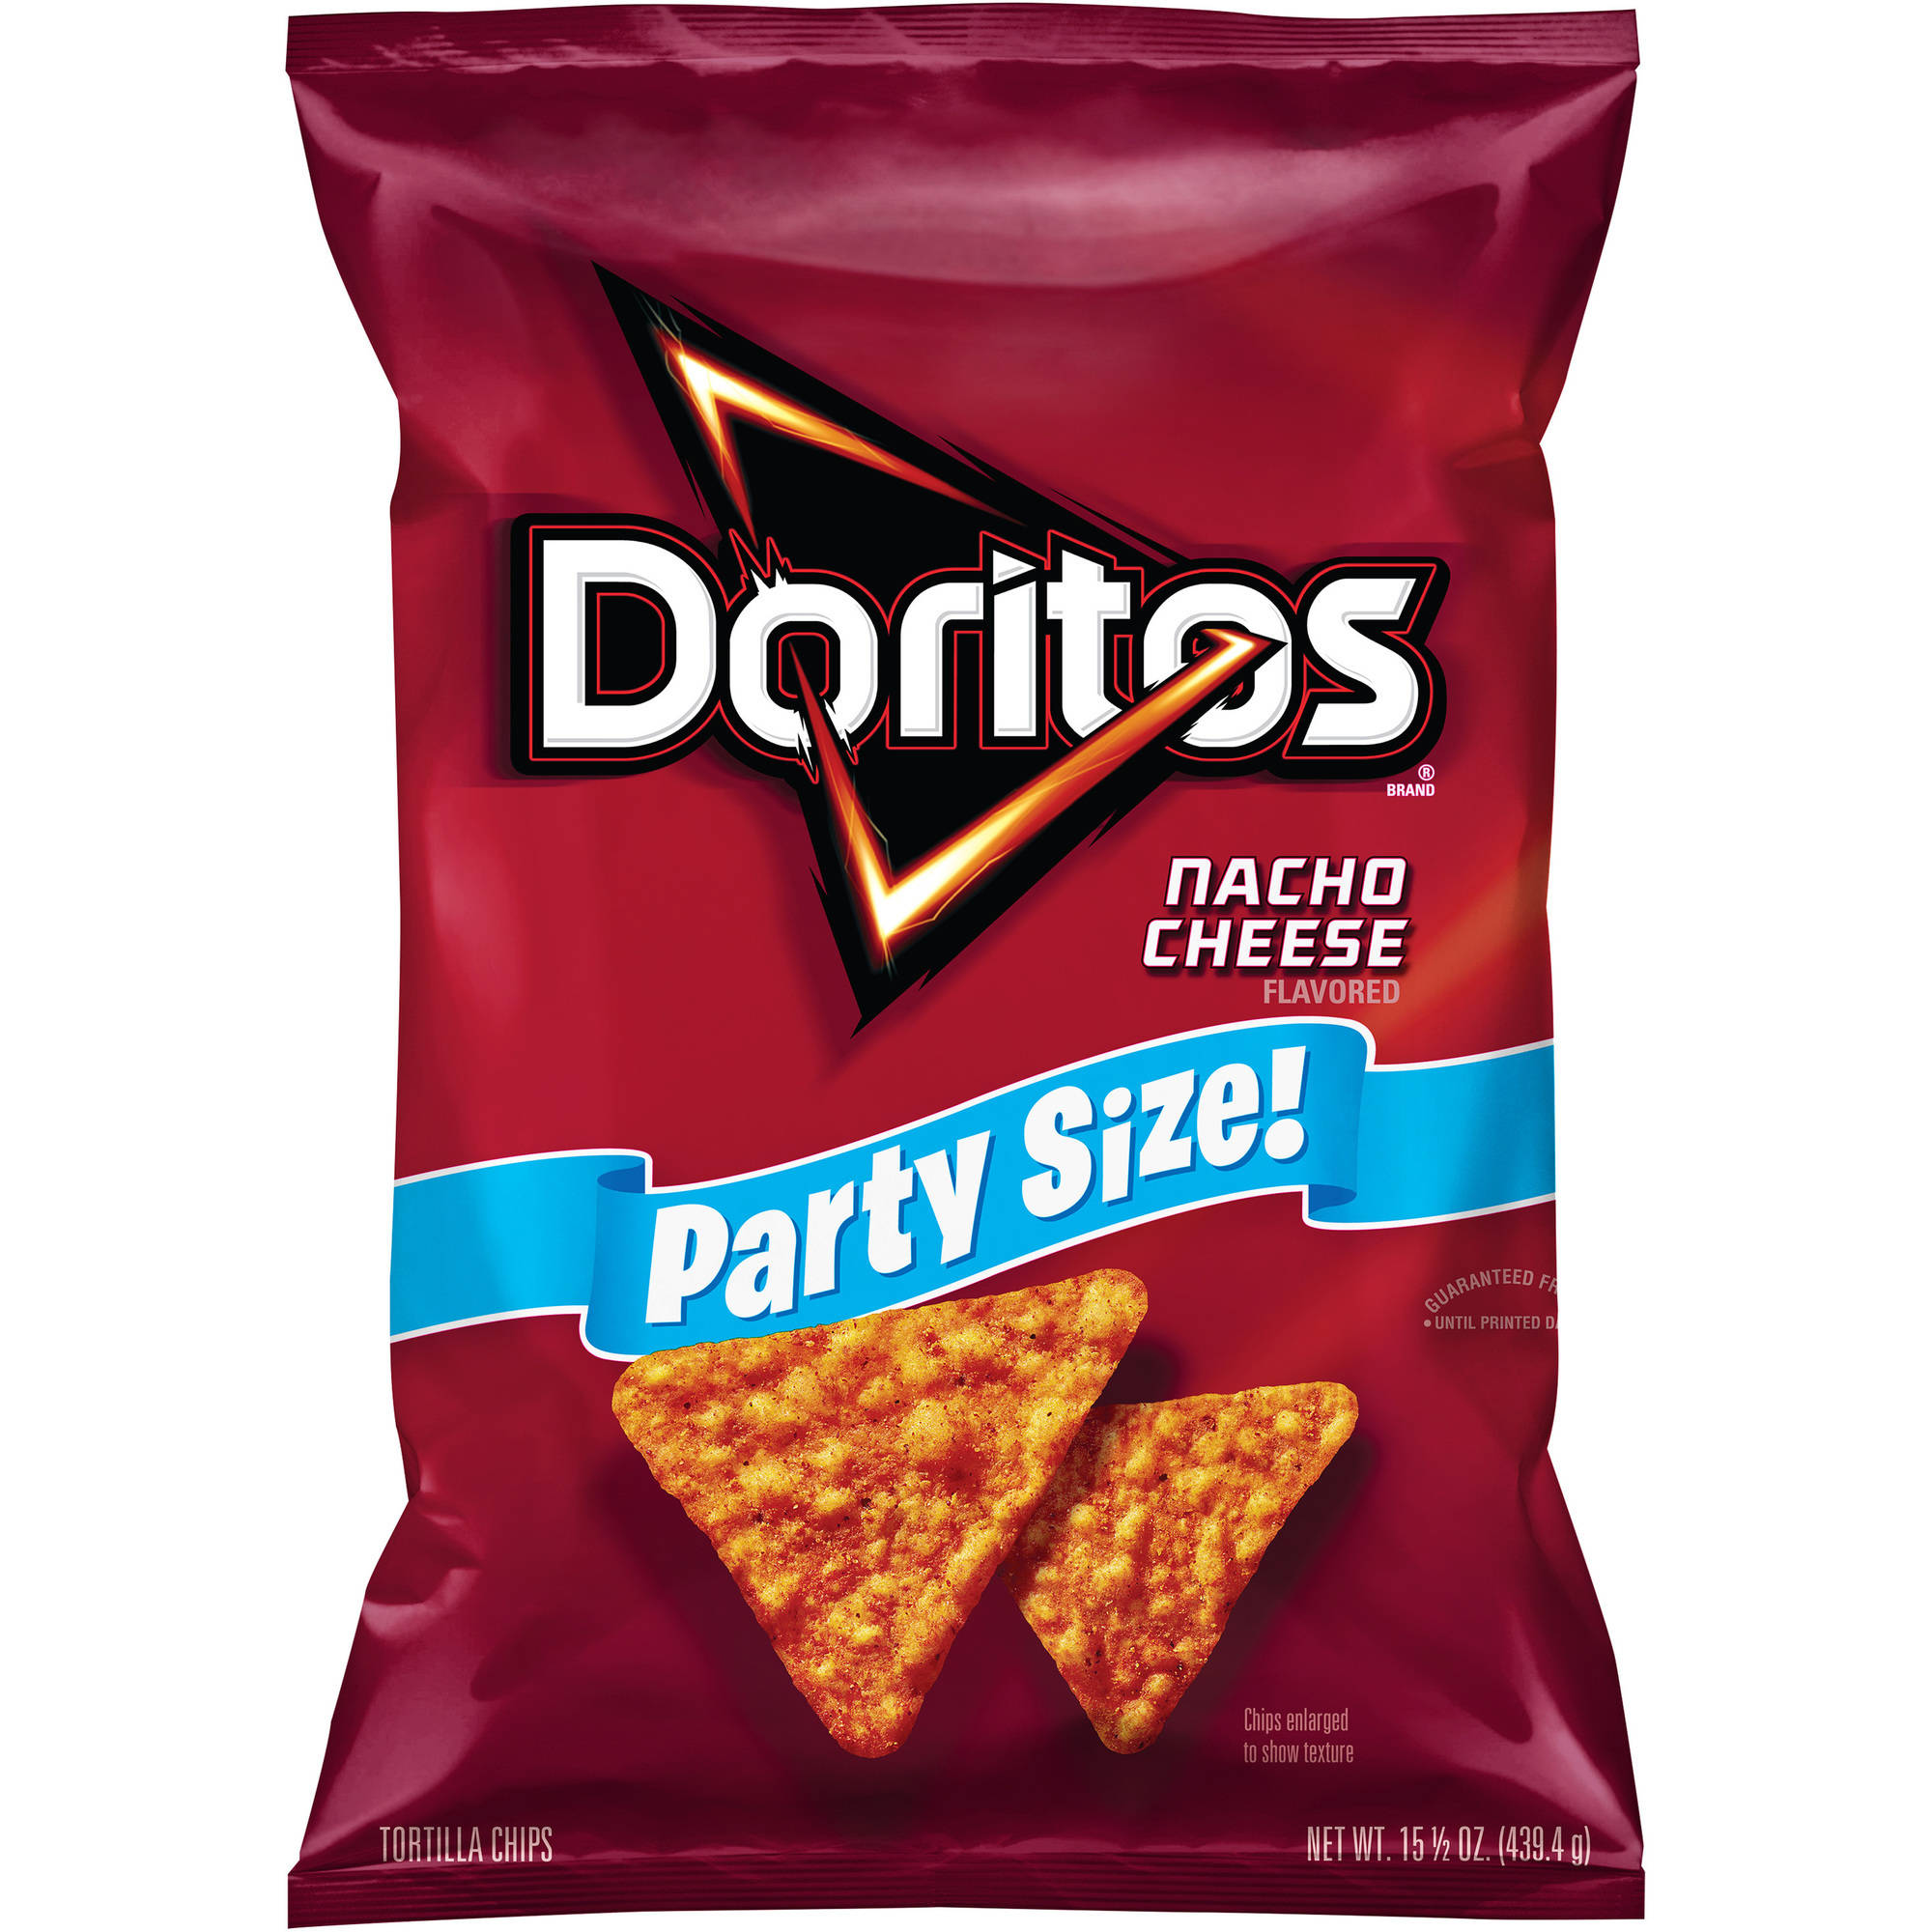 Doritos Nacho Cheese Flavored Tortilla Chips, 15.5 oz